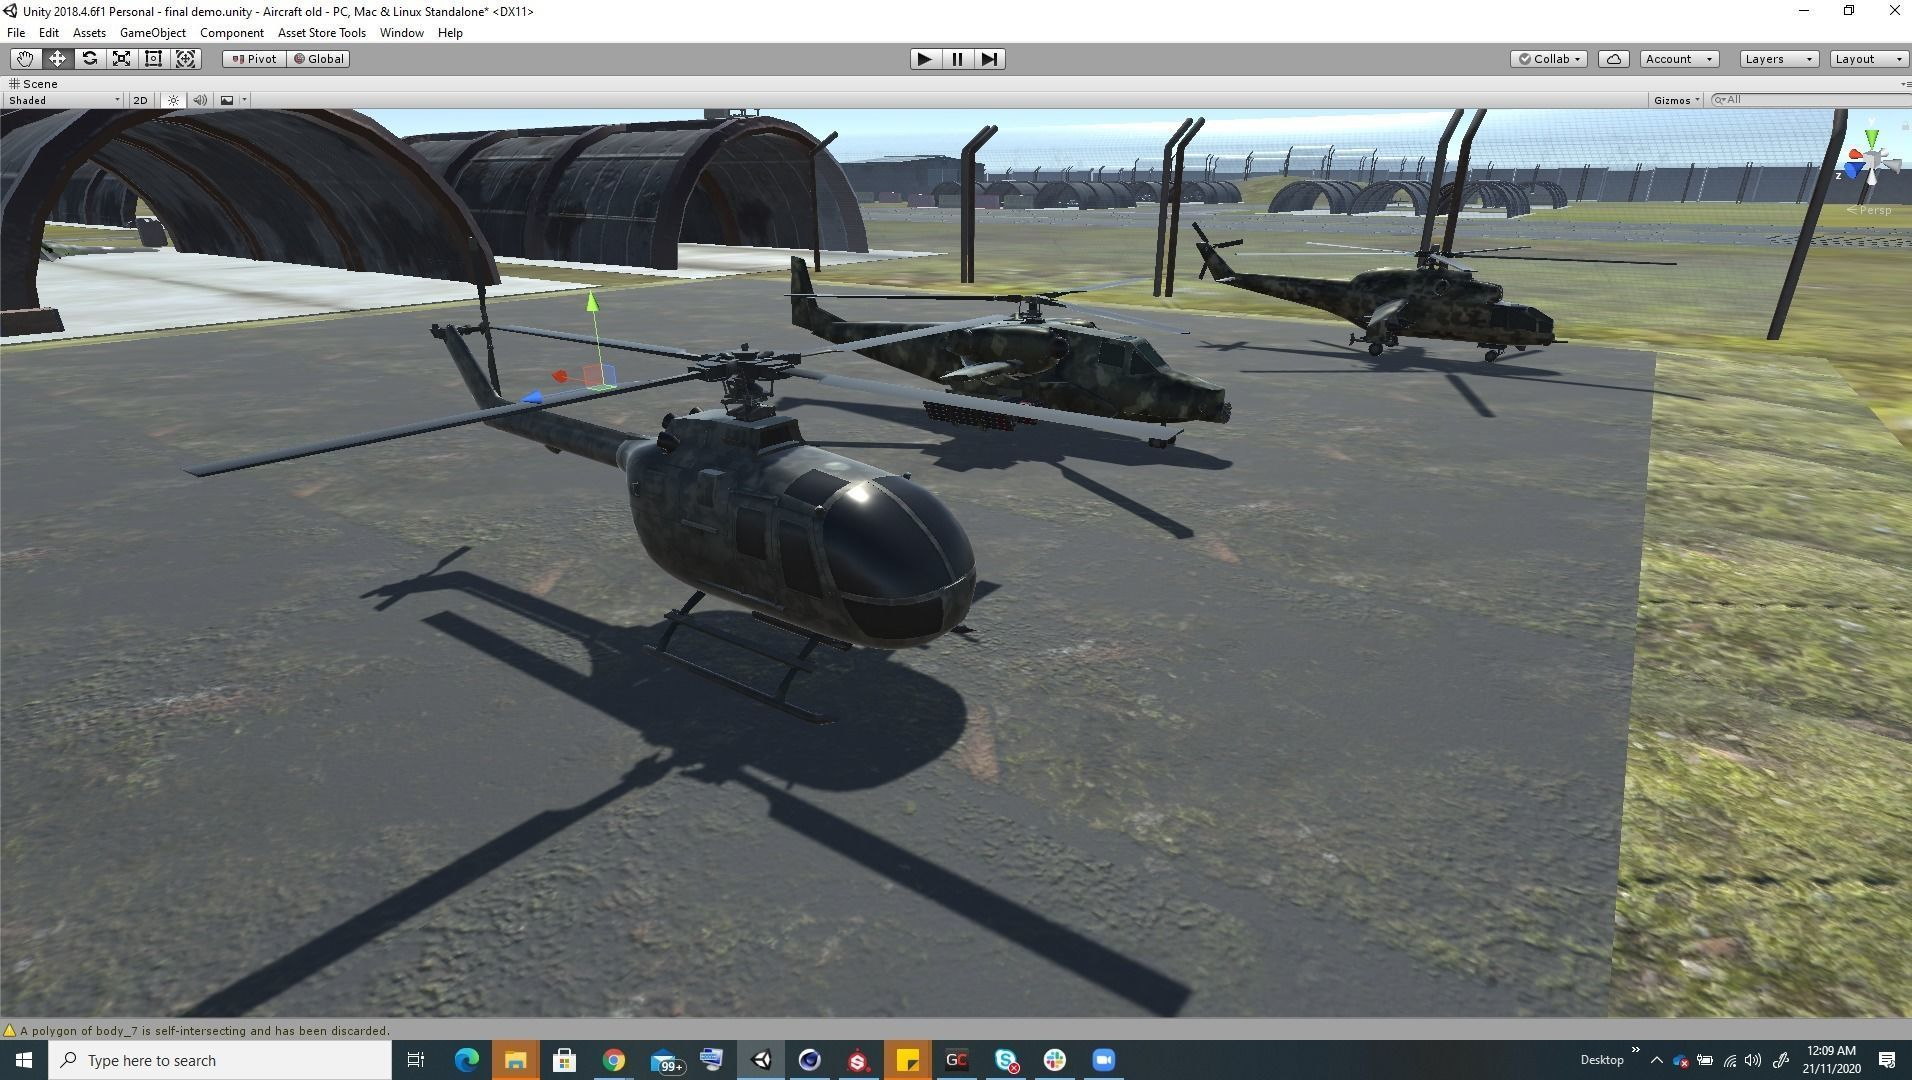 Low Poly game ready air field with helicopters and aircraft